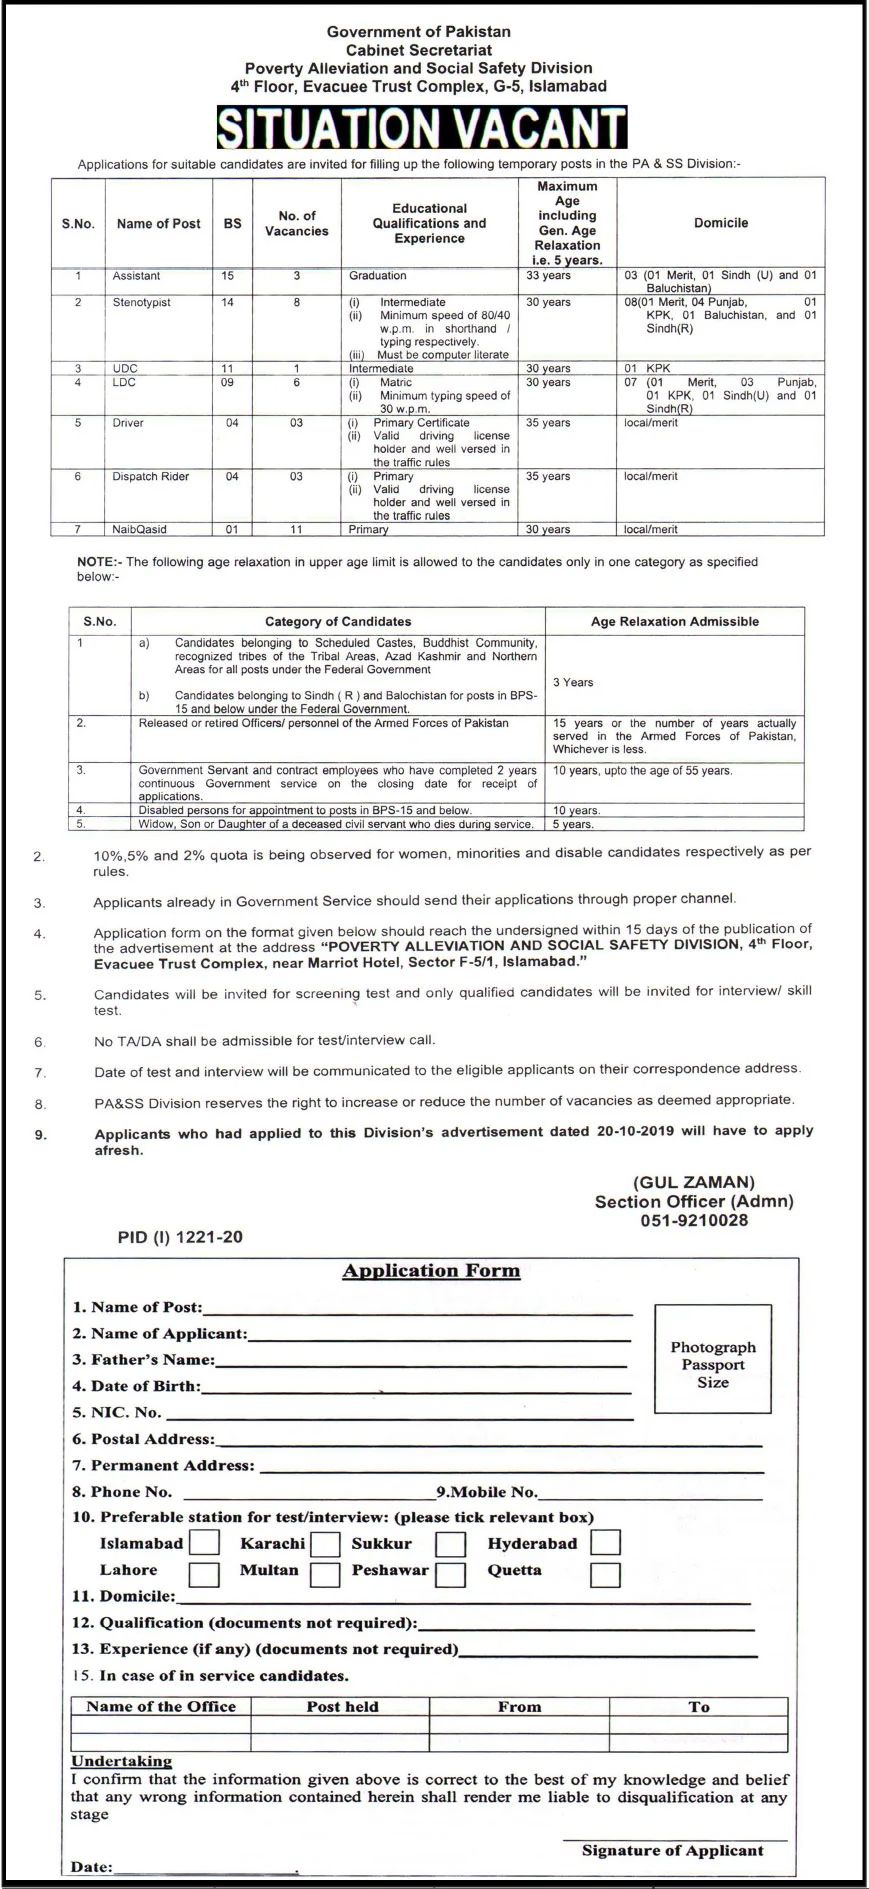 Government of Pakistan Cabinet Secretariat Islamabad Jobs September 2020